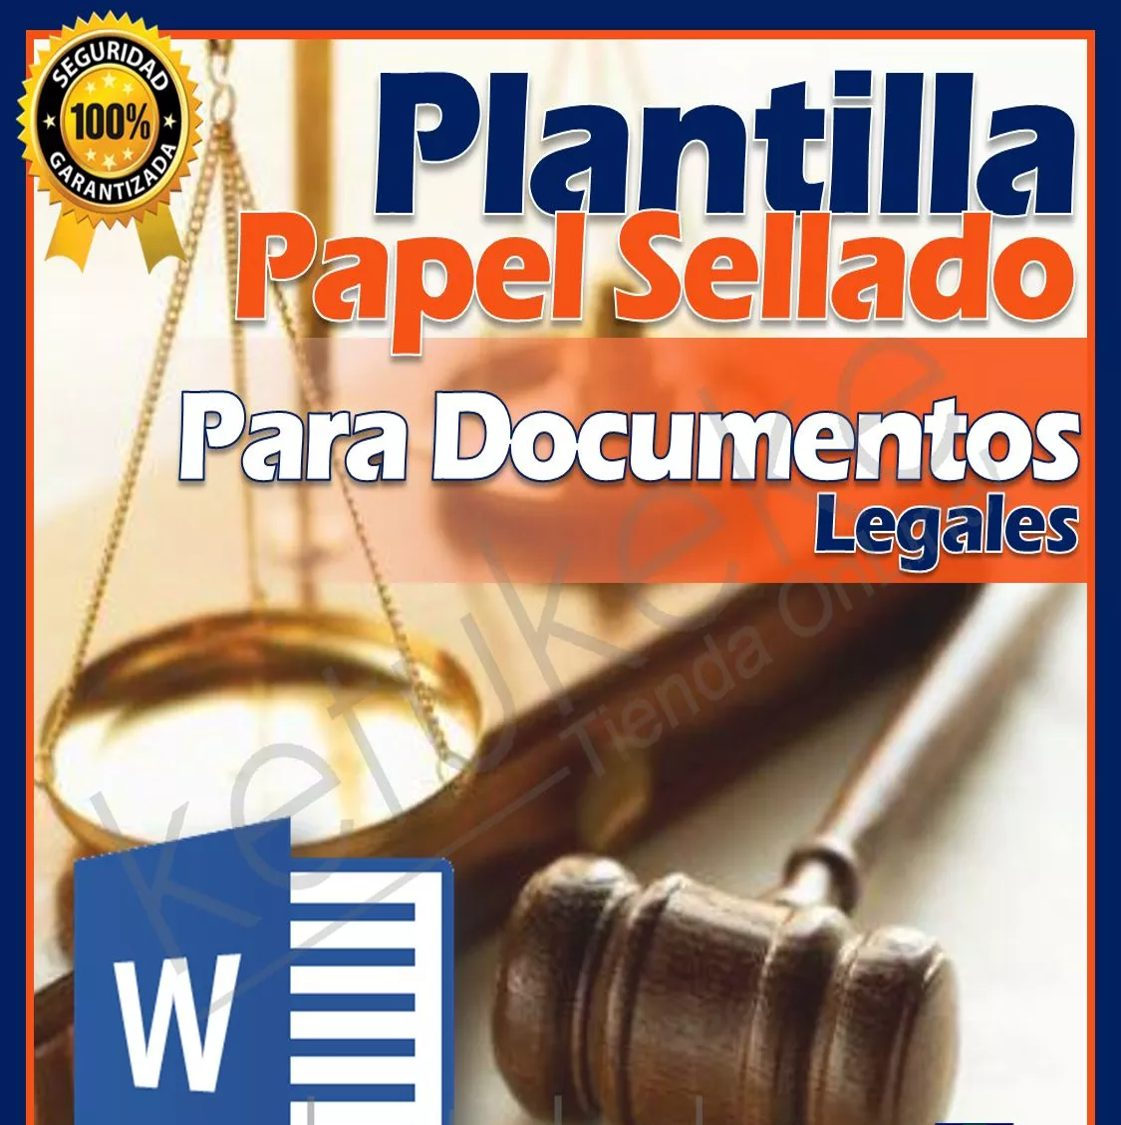 Plantilla Para Redactar Documentos En Papel Sellado - Word - Bs ...